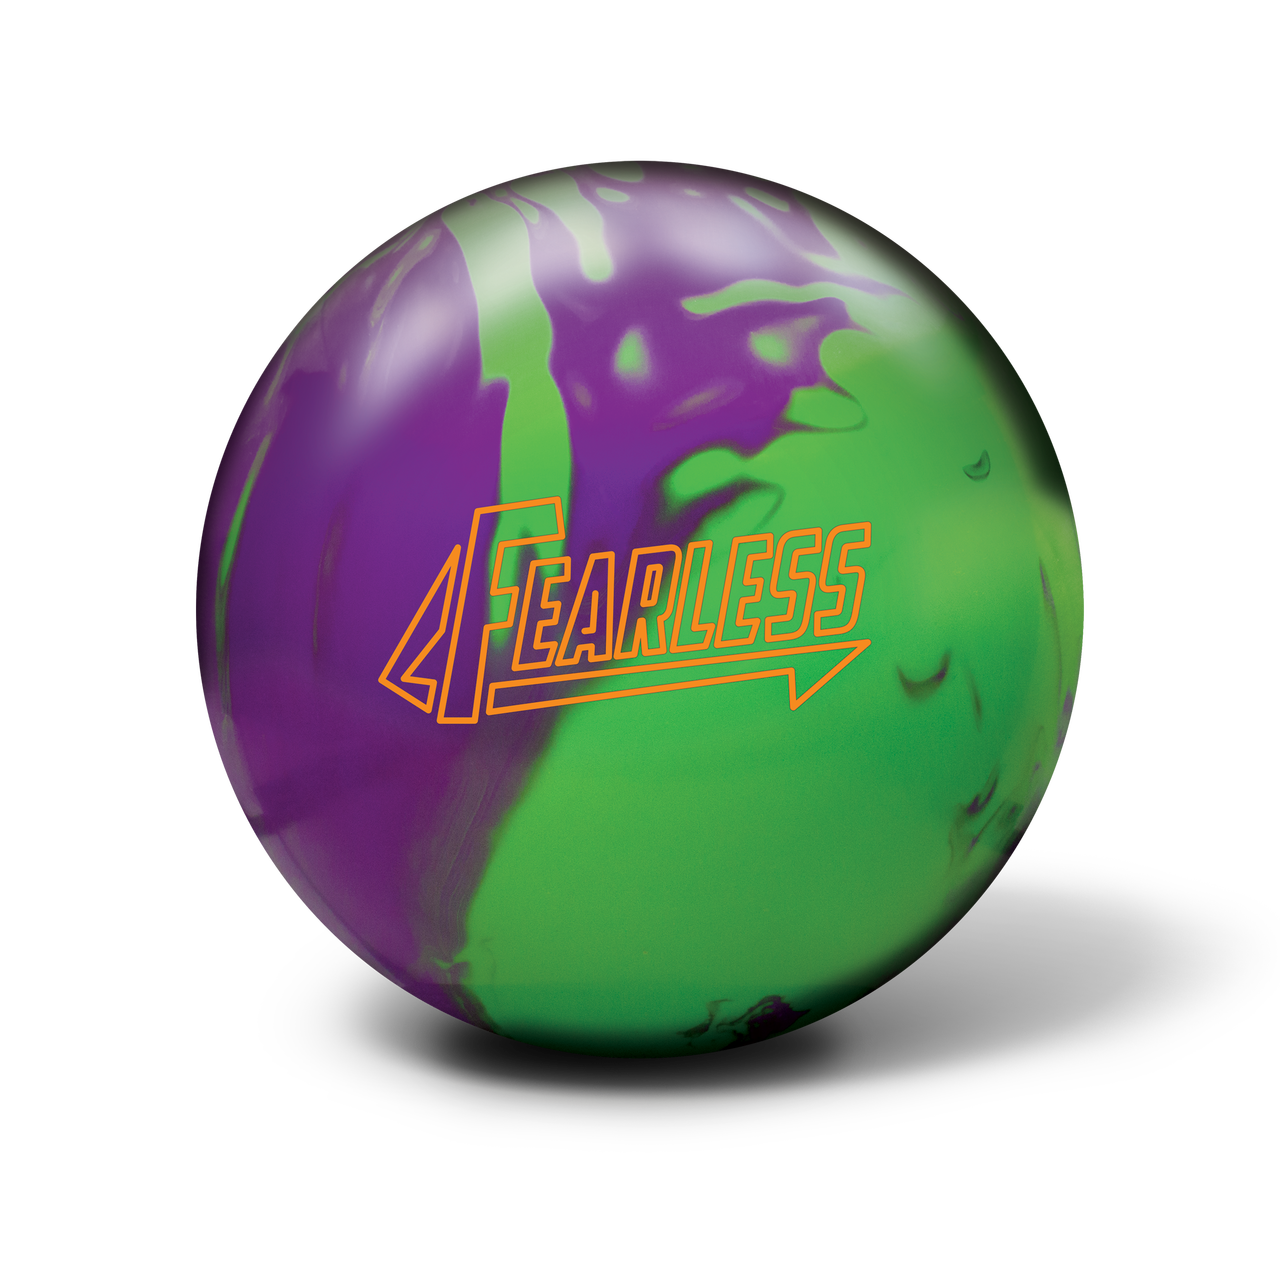 Brunswick Fearless Bowling Ball FREE SHIPPING